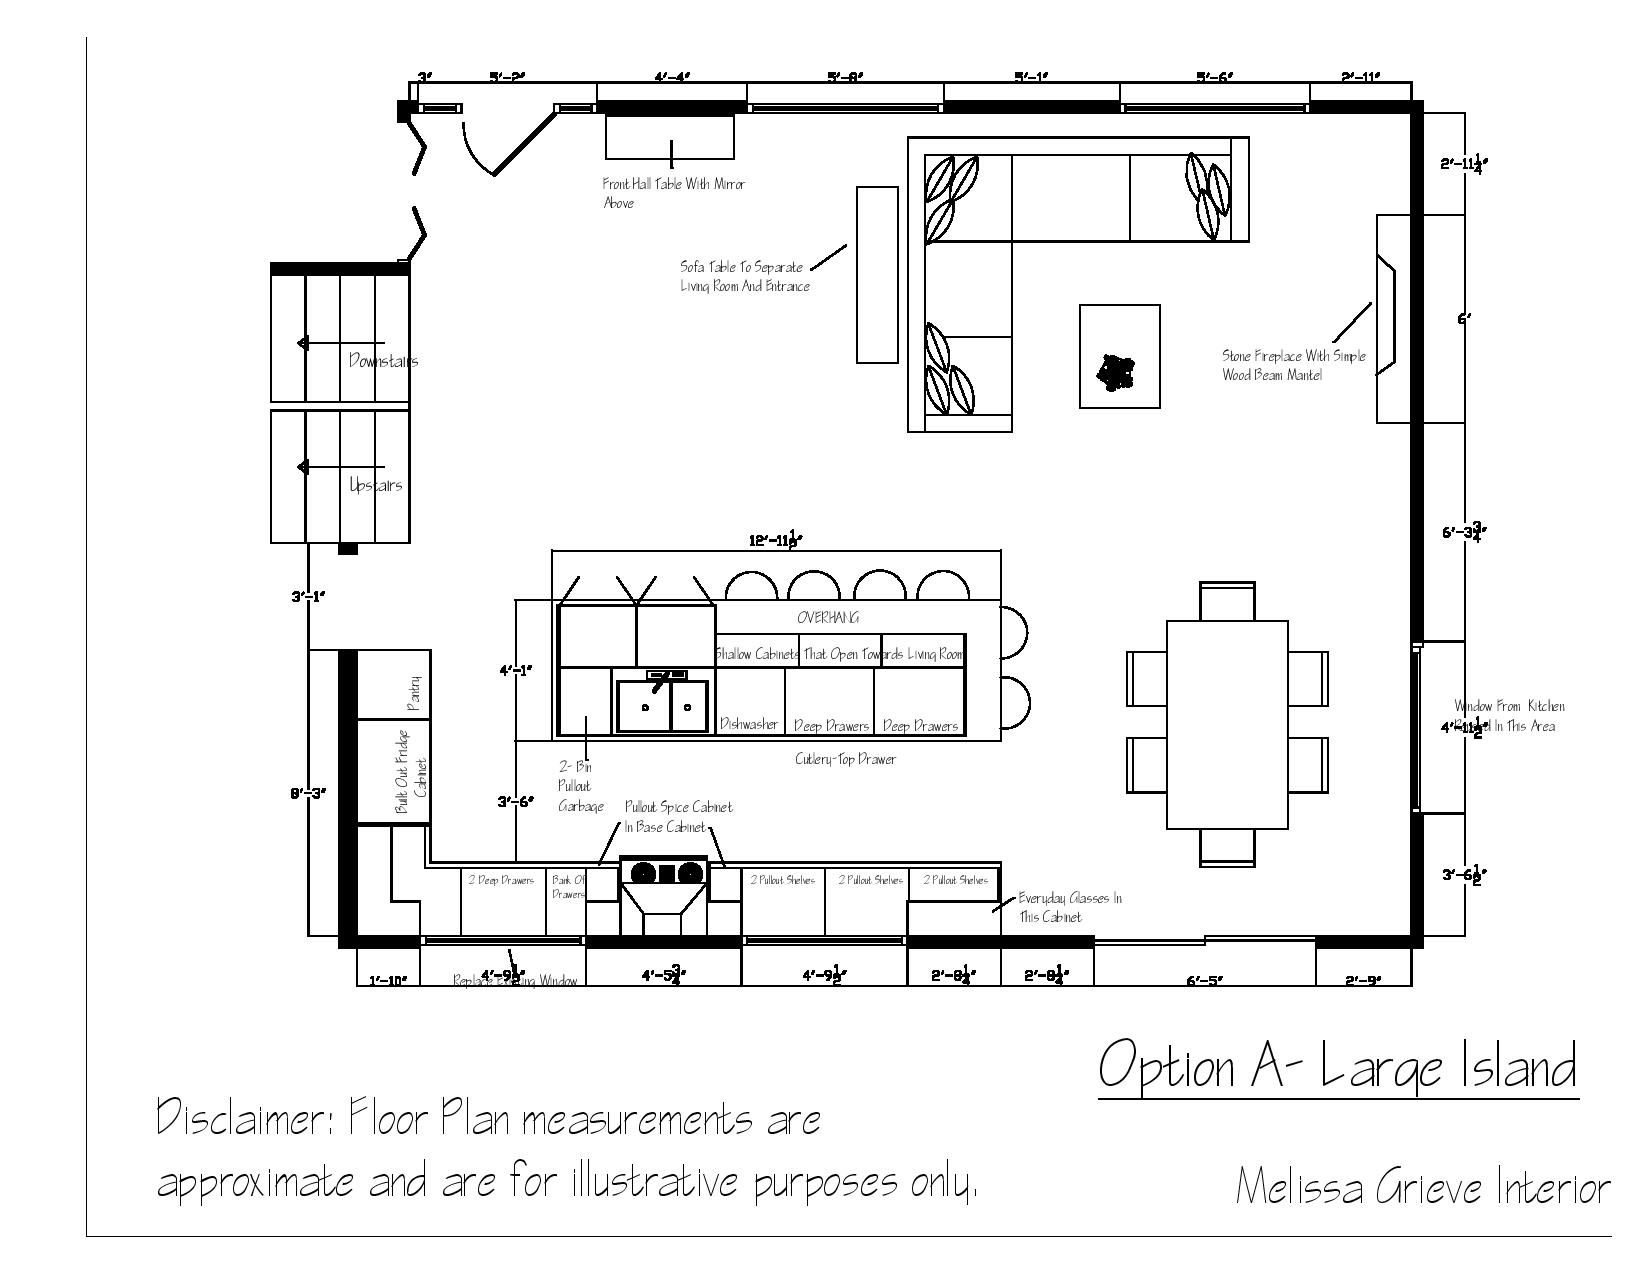 _Brown Kitchen Option A Large Island-page-001.jpg